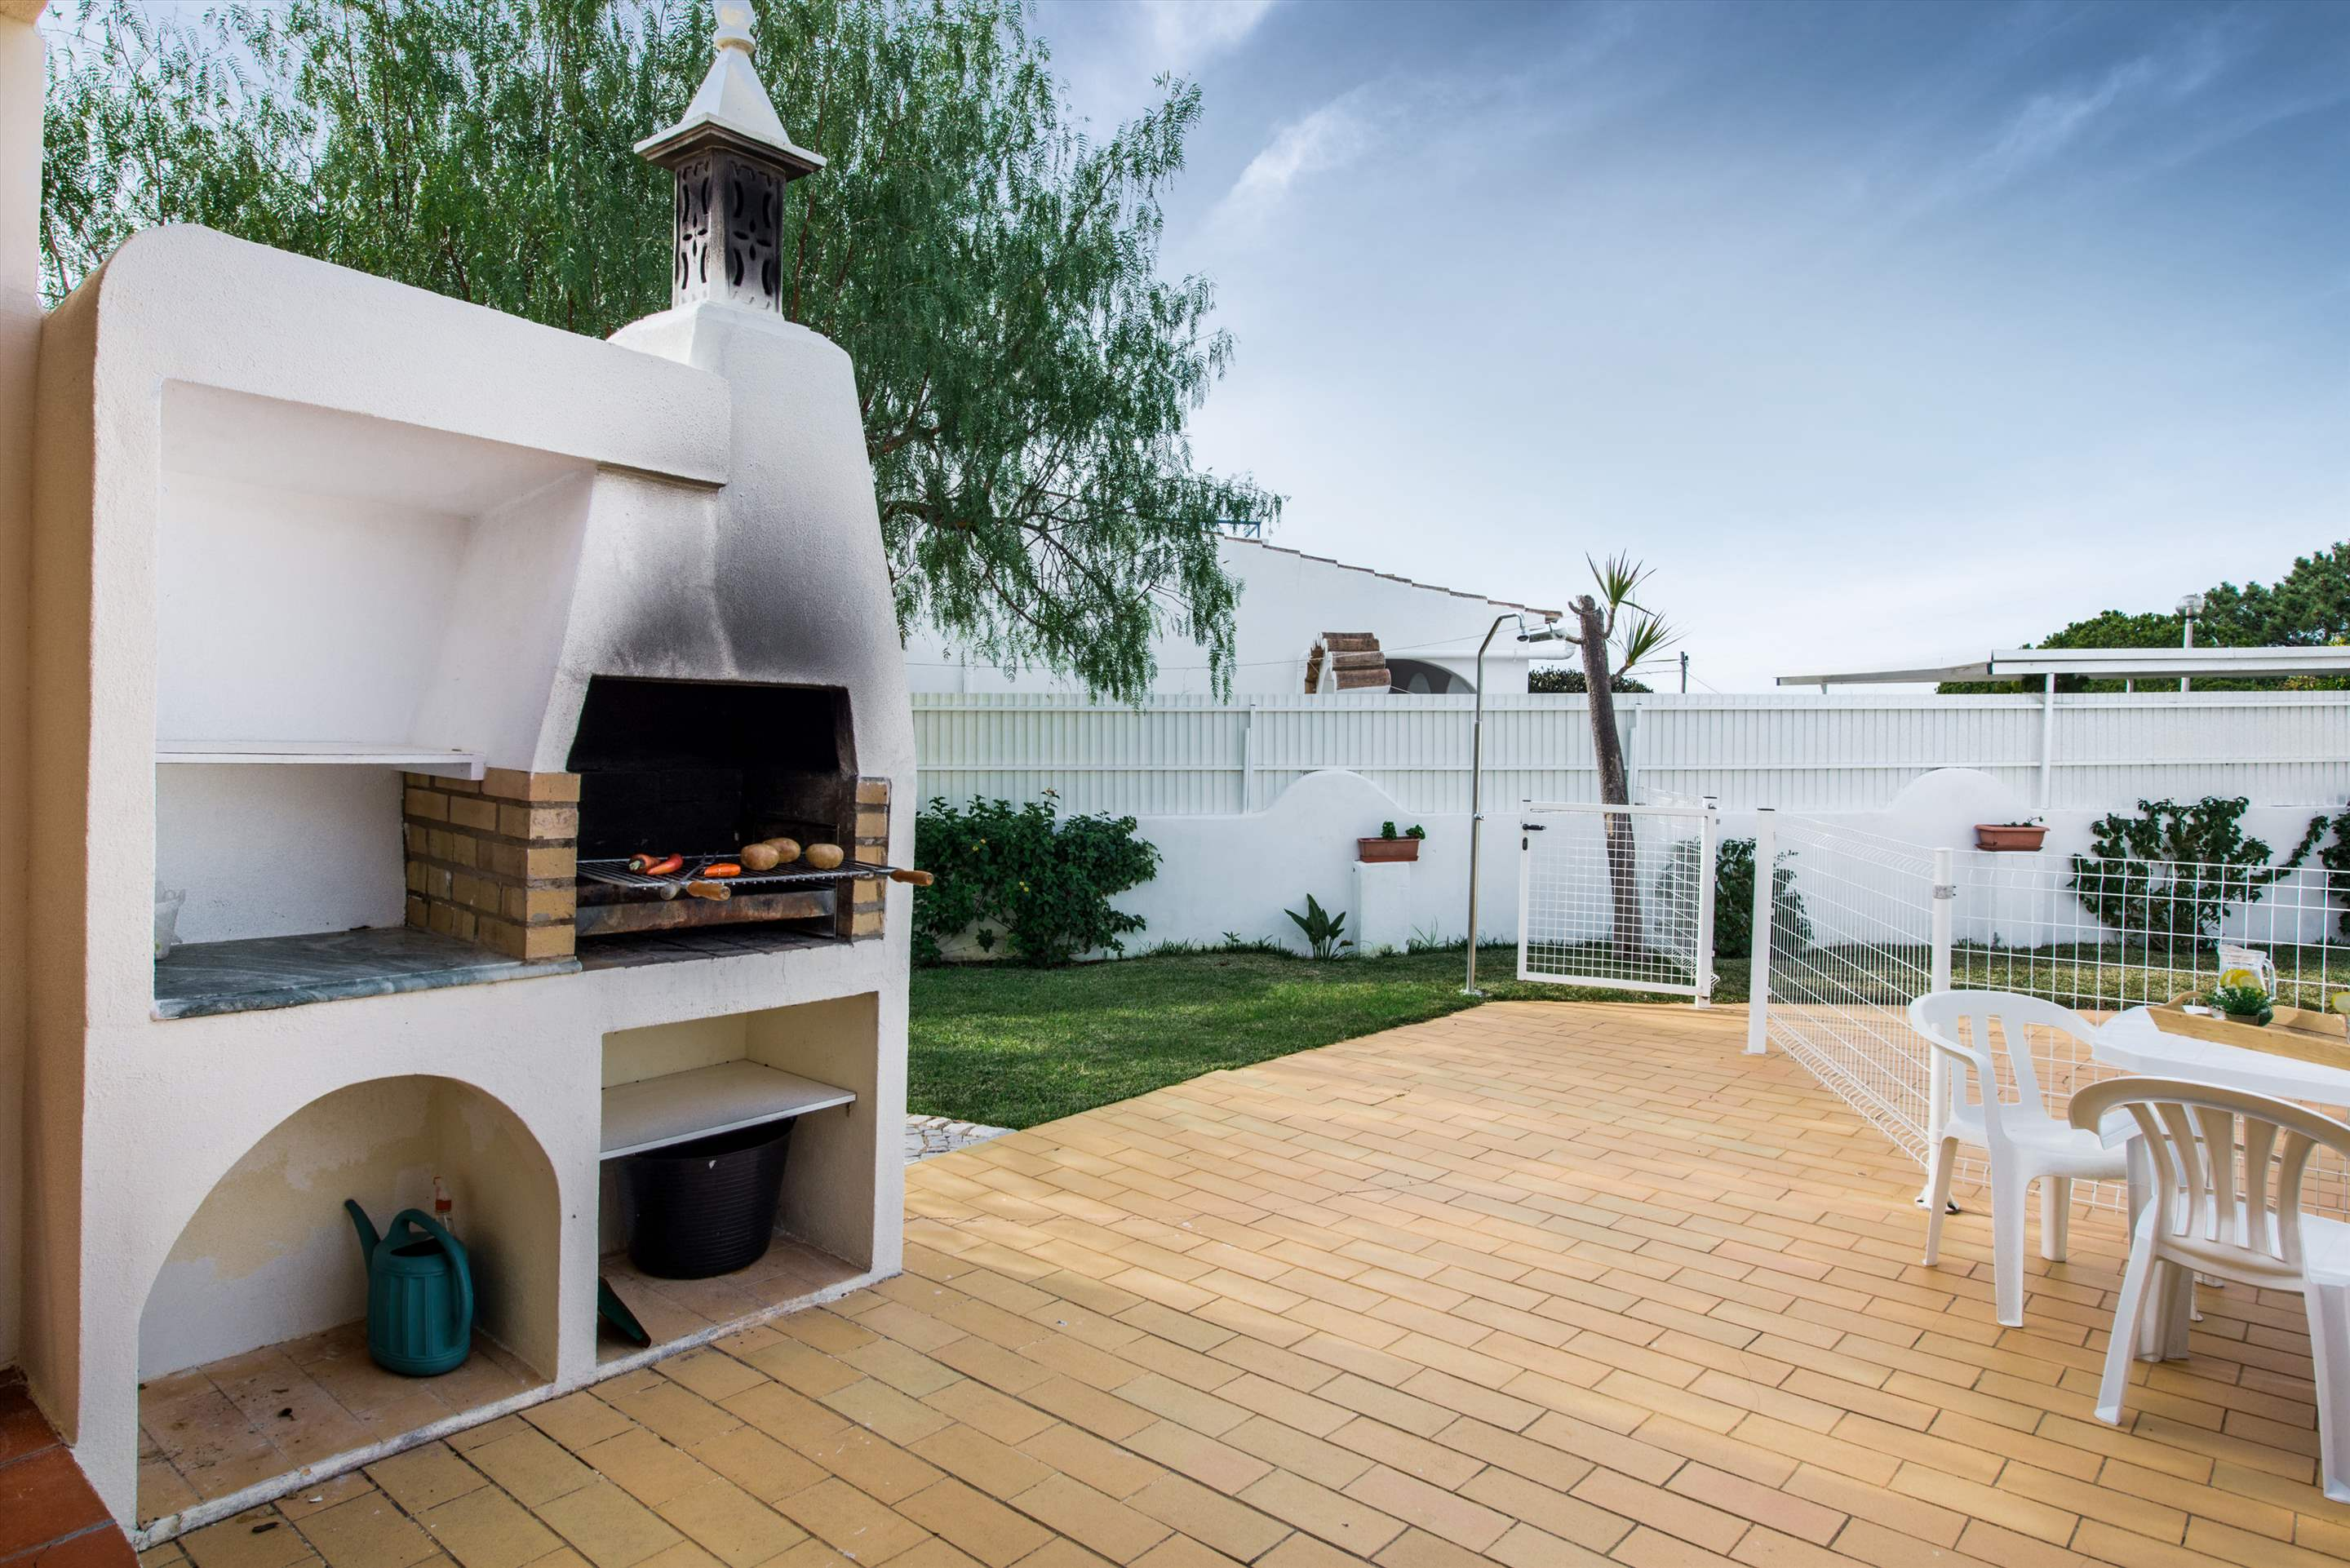 Casa Isabel, 5-6 persons rate, 3 bedroom villa in Gale, Vale da Parra and Guia, Algarve Photo #23